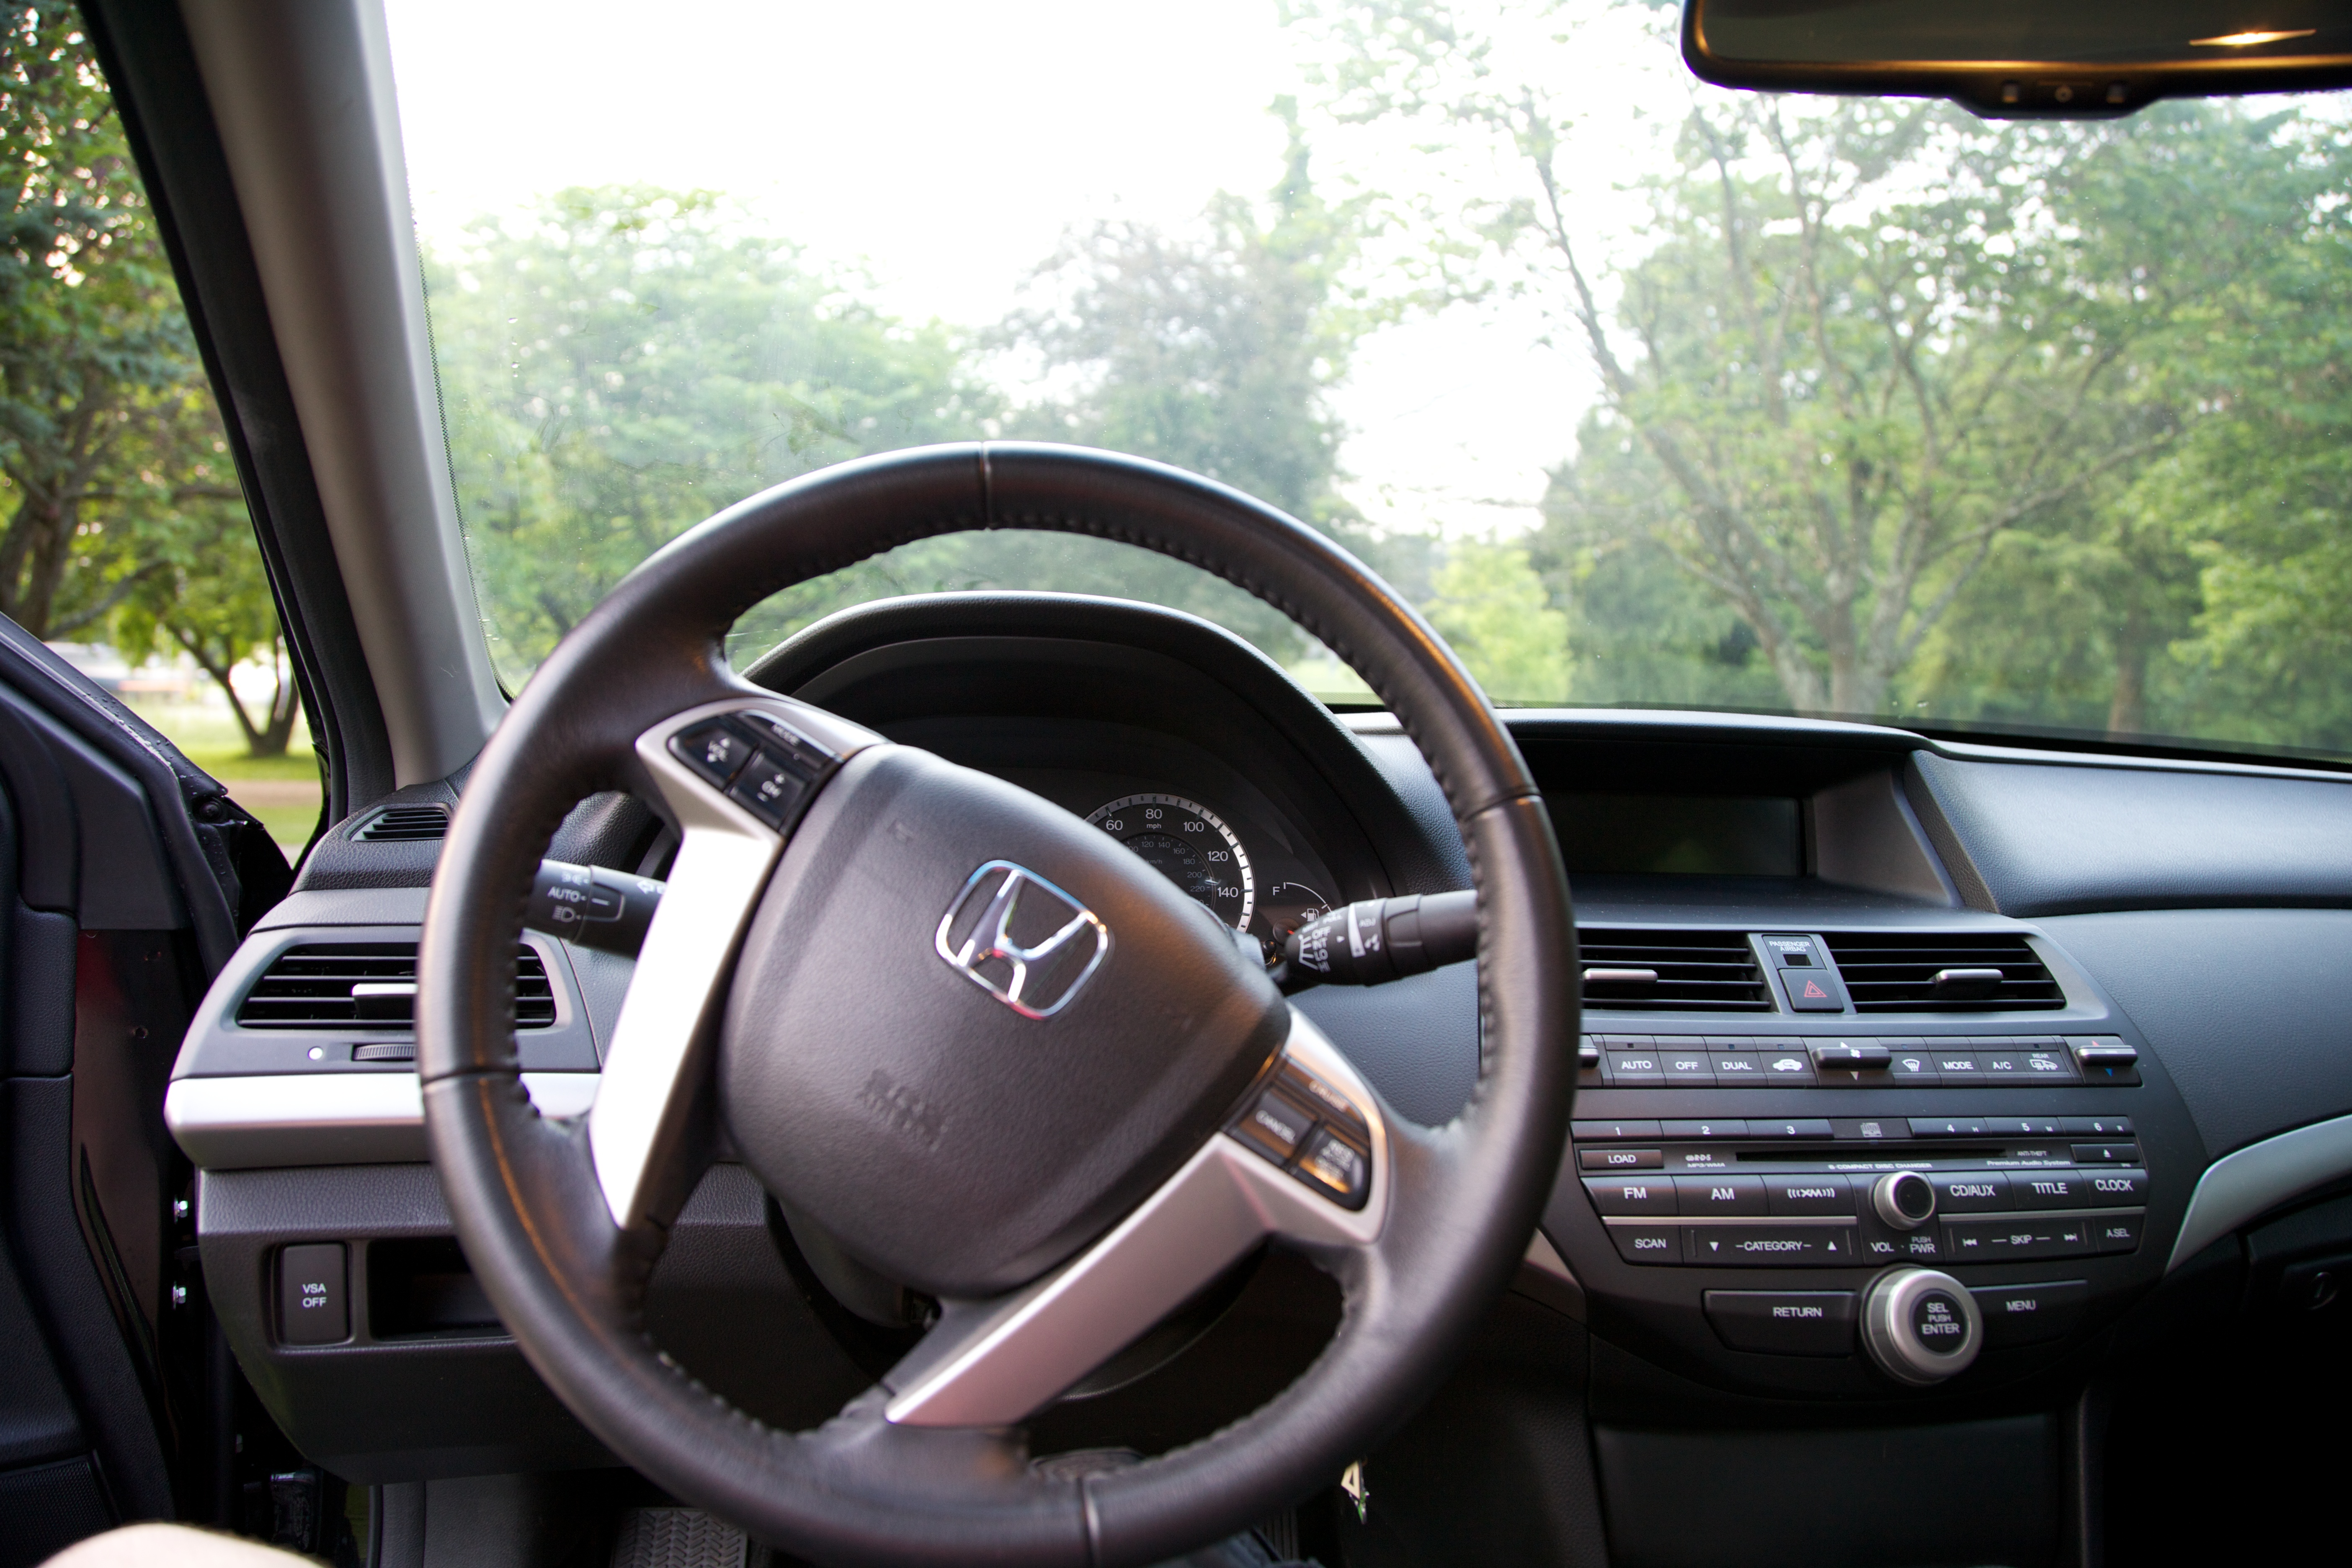 Top photo my dearly departed 2008 honda accord